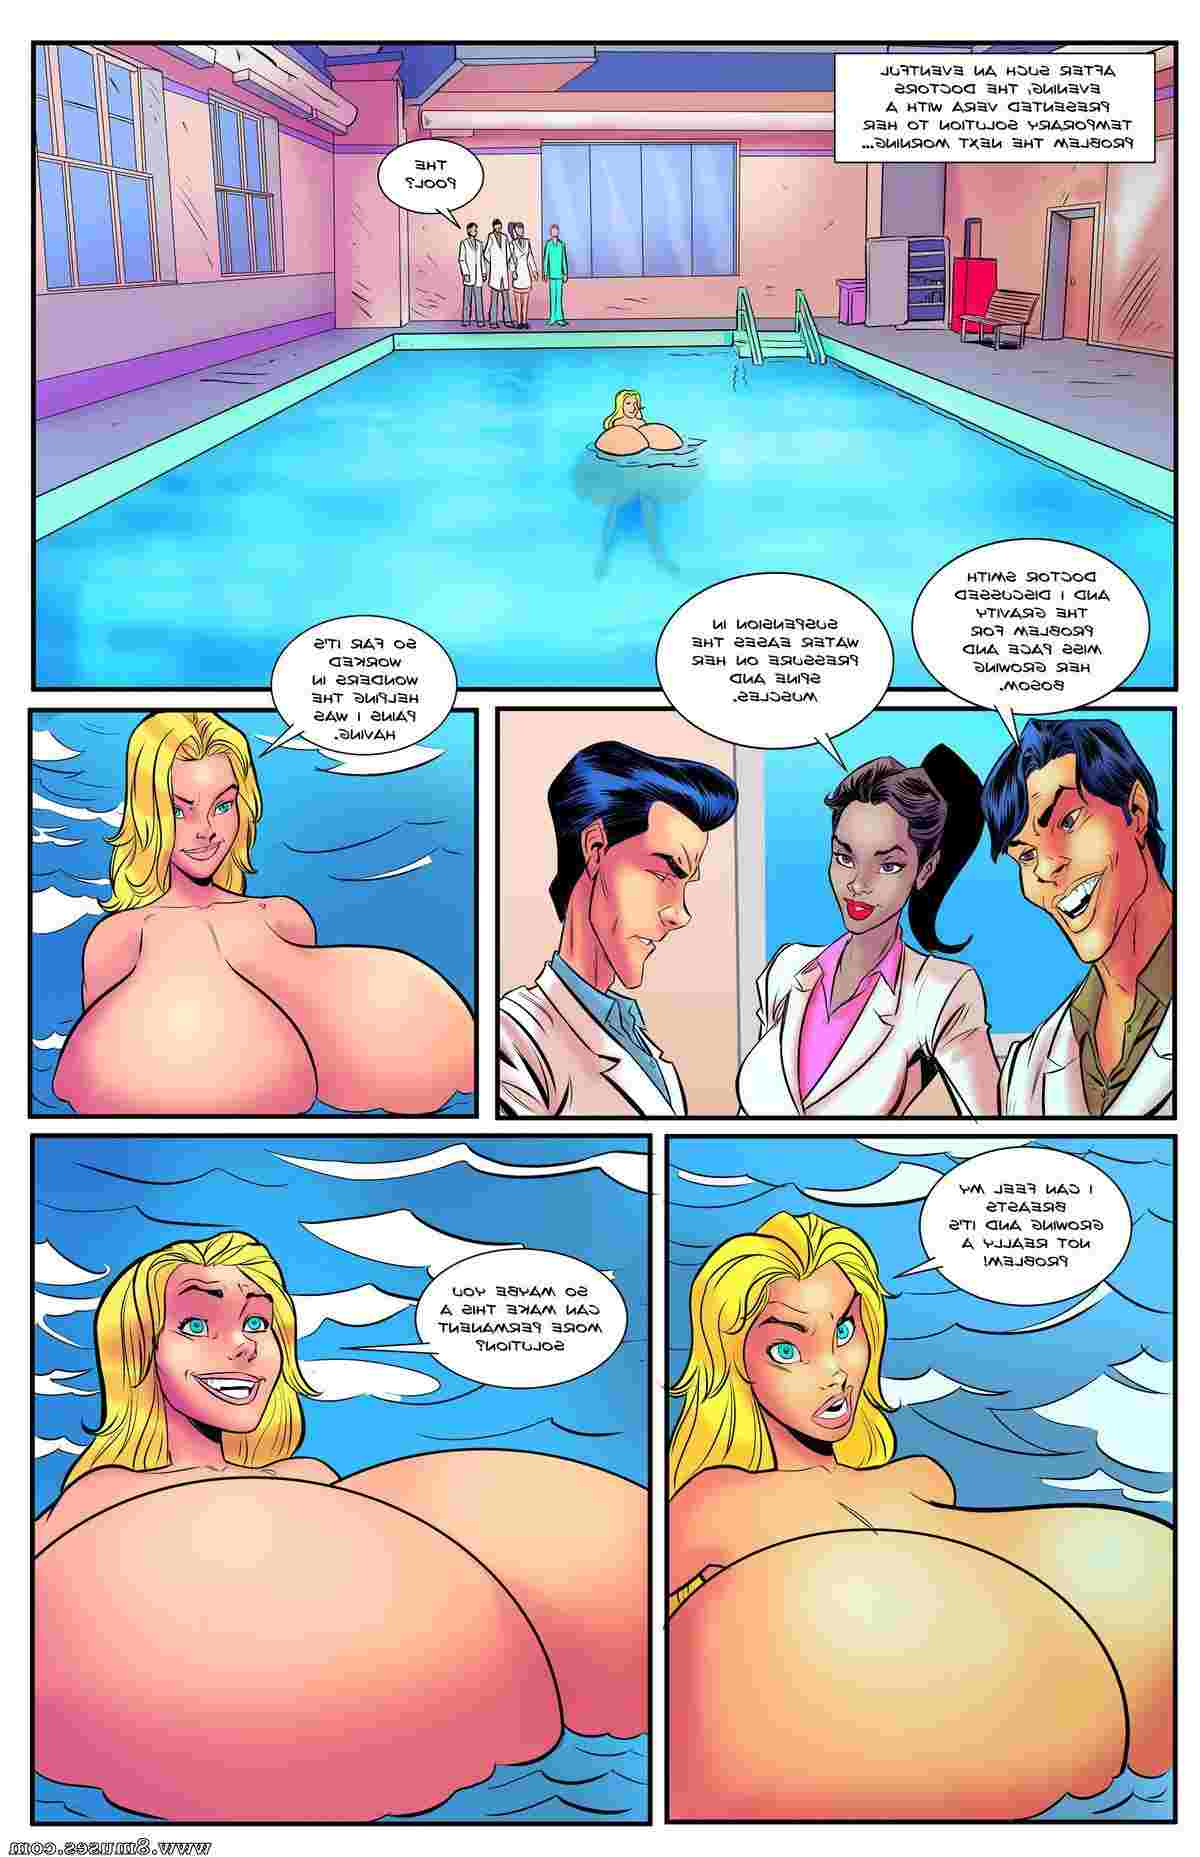 BE-Story-Club-Comics/Massive Massive__8muses_-_Sex_and_Porn_Comics_39.jpg